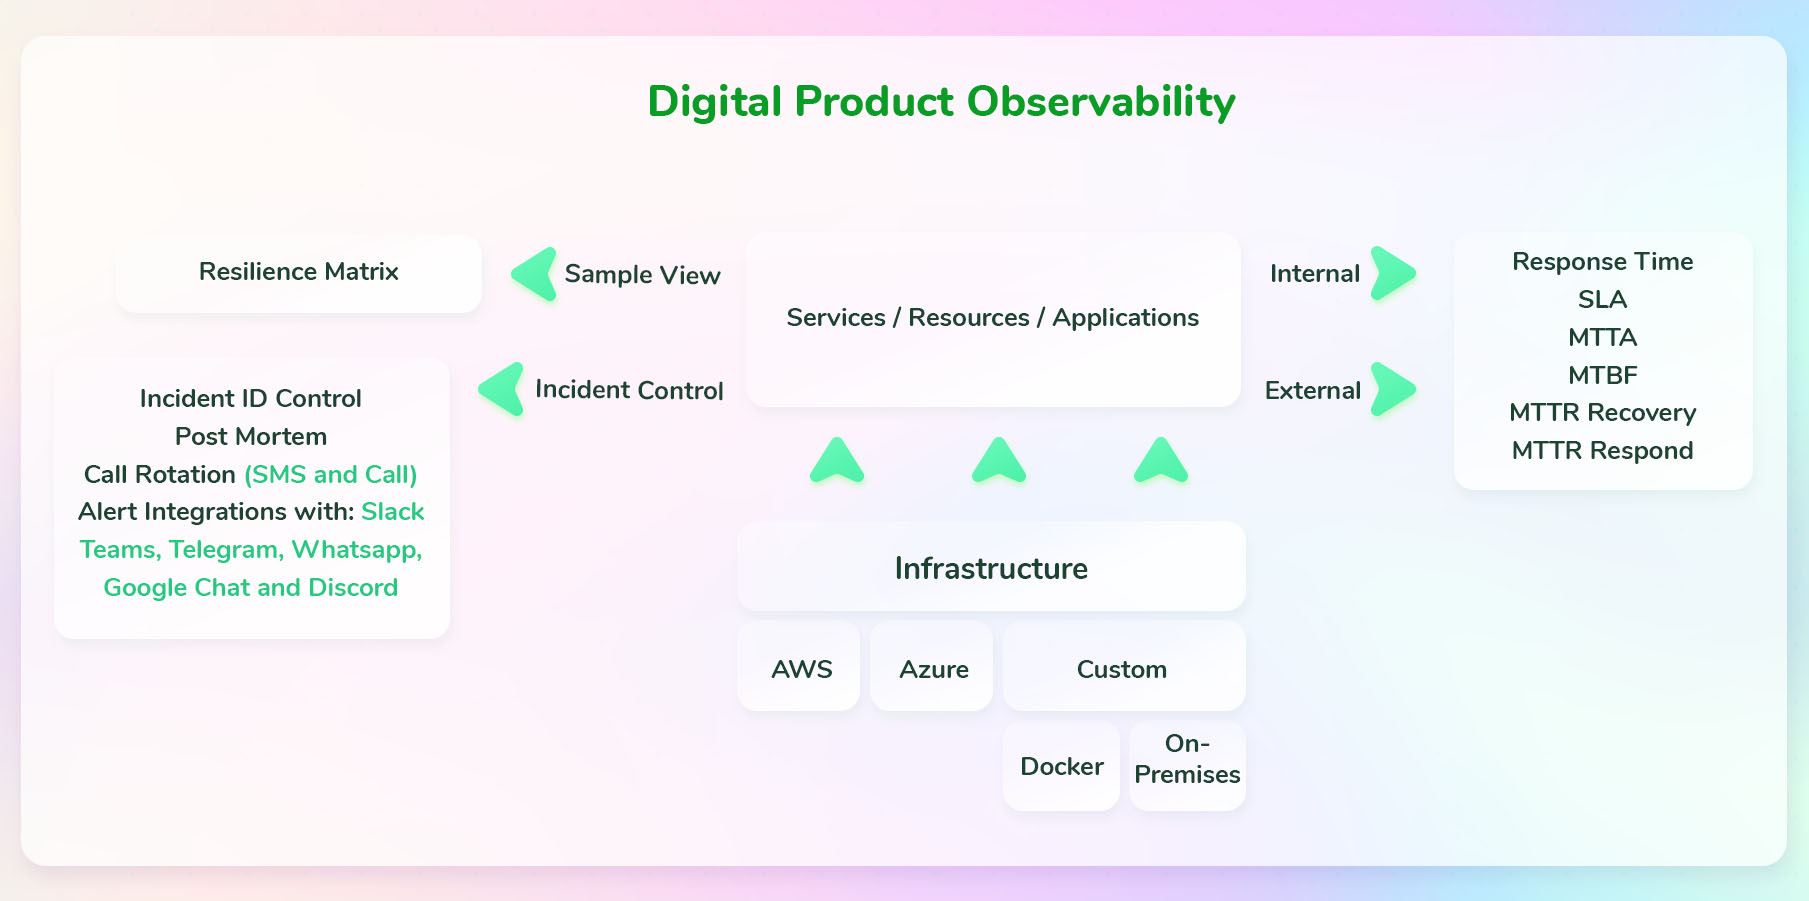 Observability reduces complexity and improves efficiency